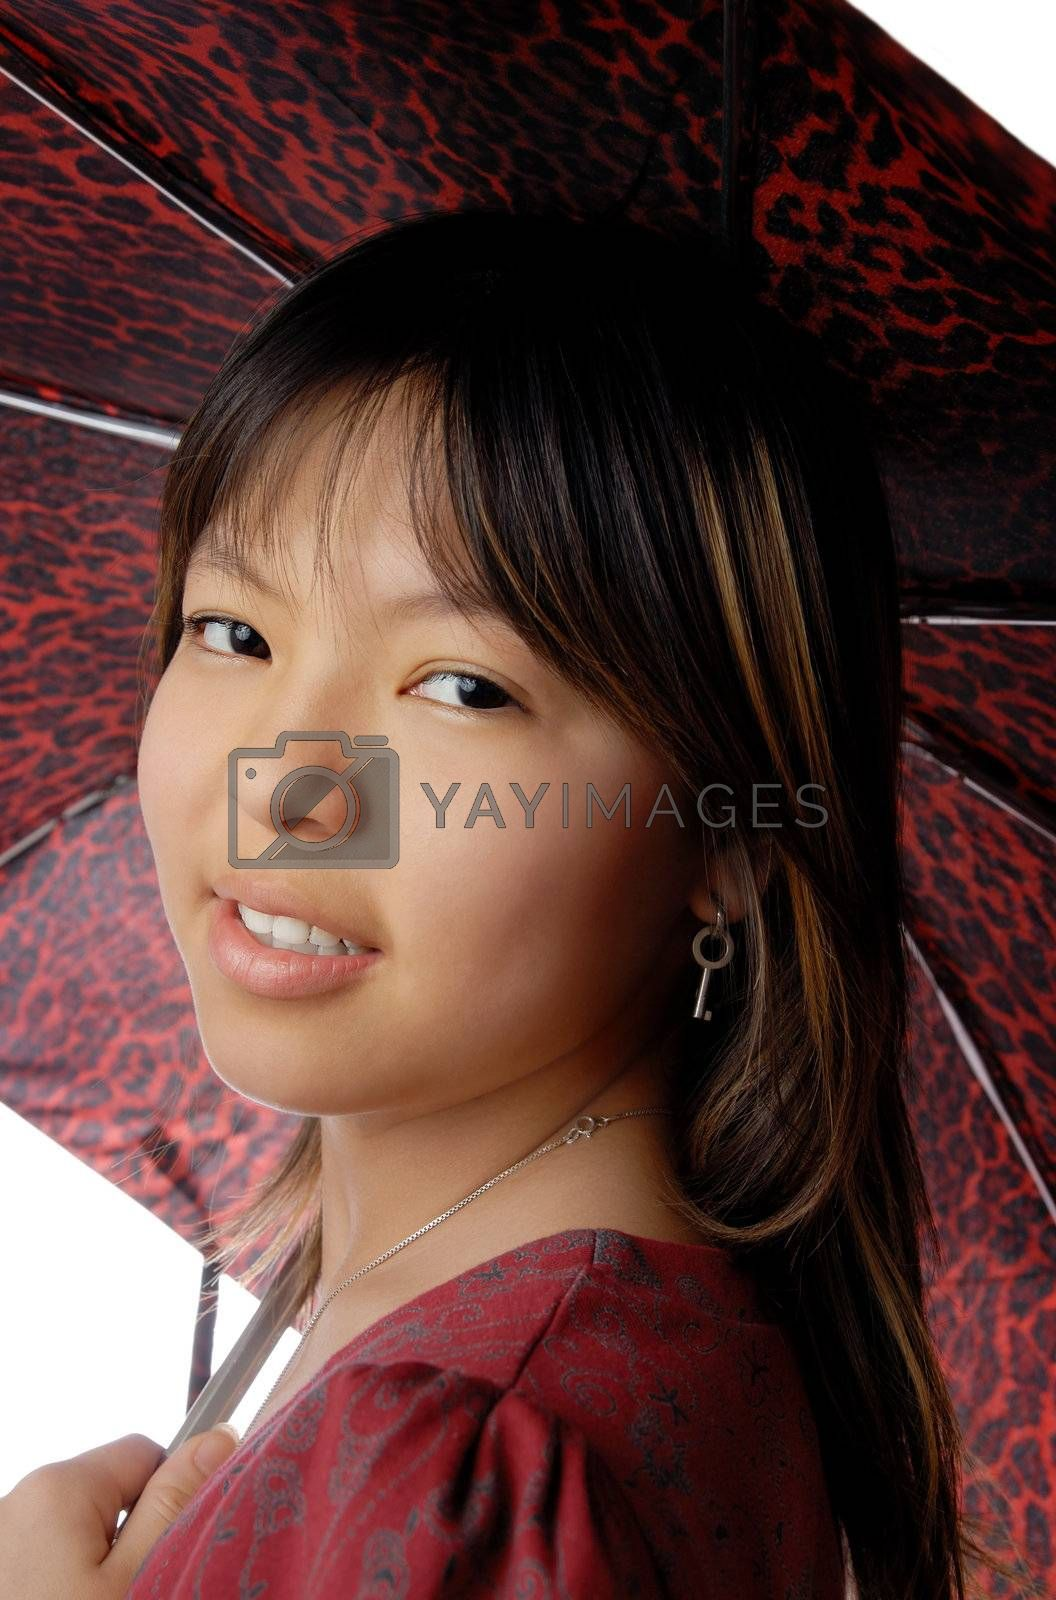 Photo of the young smiling model with umbrella